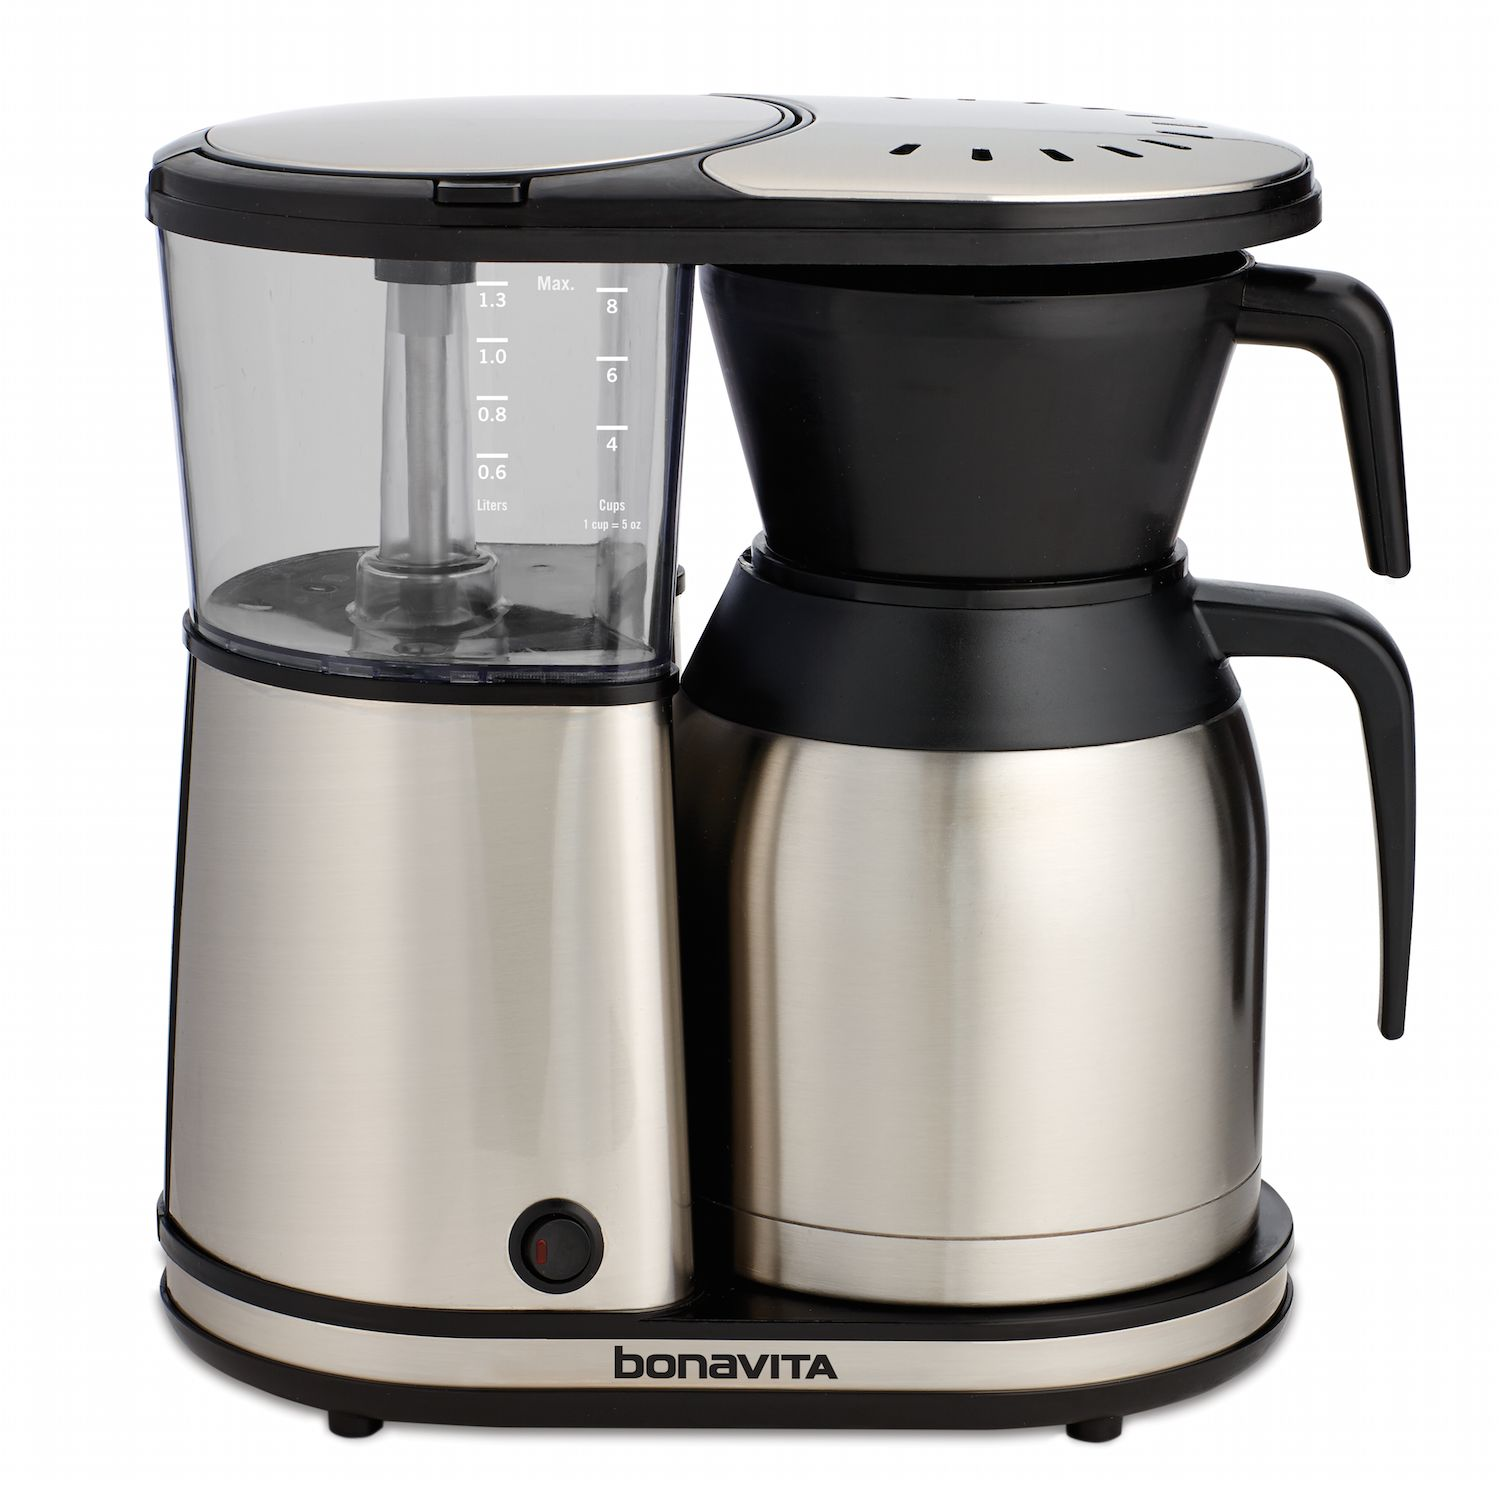 bonavita 8cup coffee maker with doublewall thermal carafe - Thermal Carafe